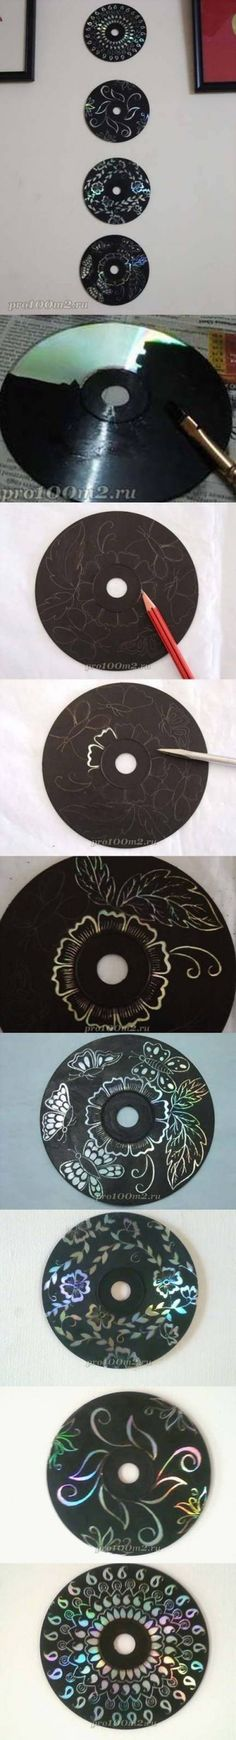 Paint an old cd with black paint, draw a cool design in pencil, then carve it out.